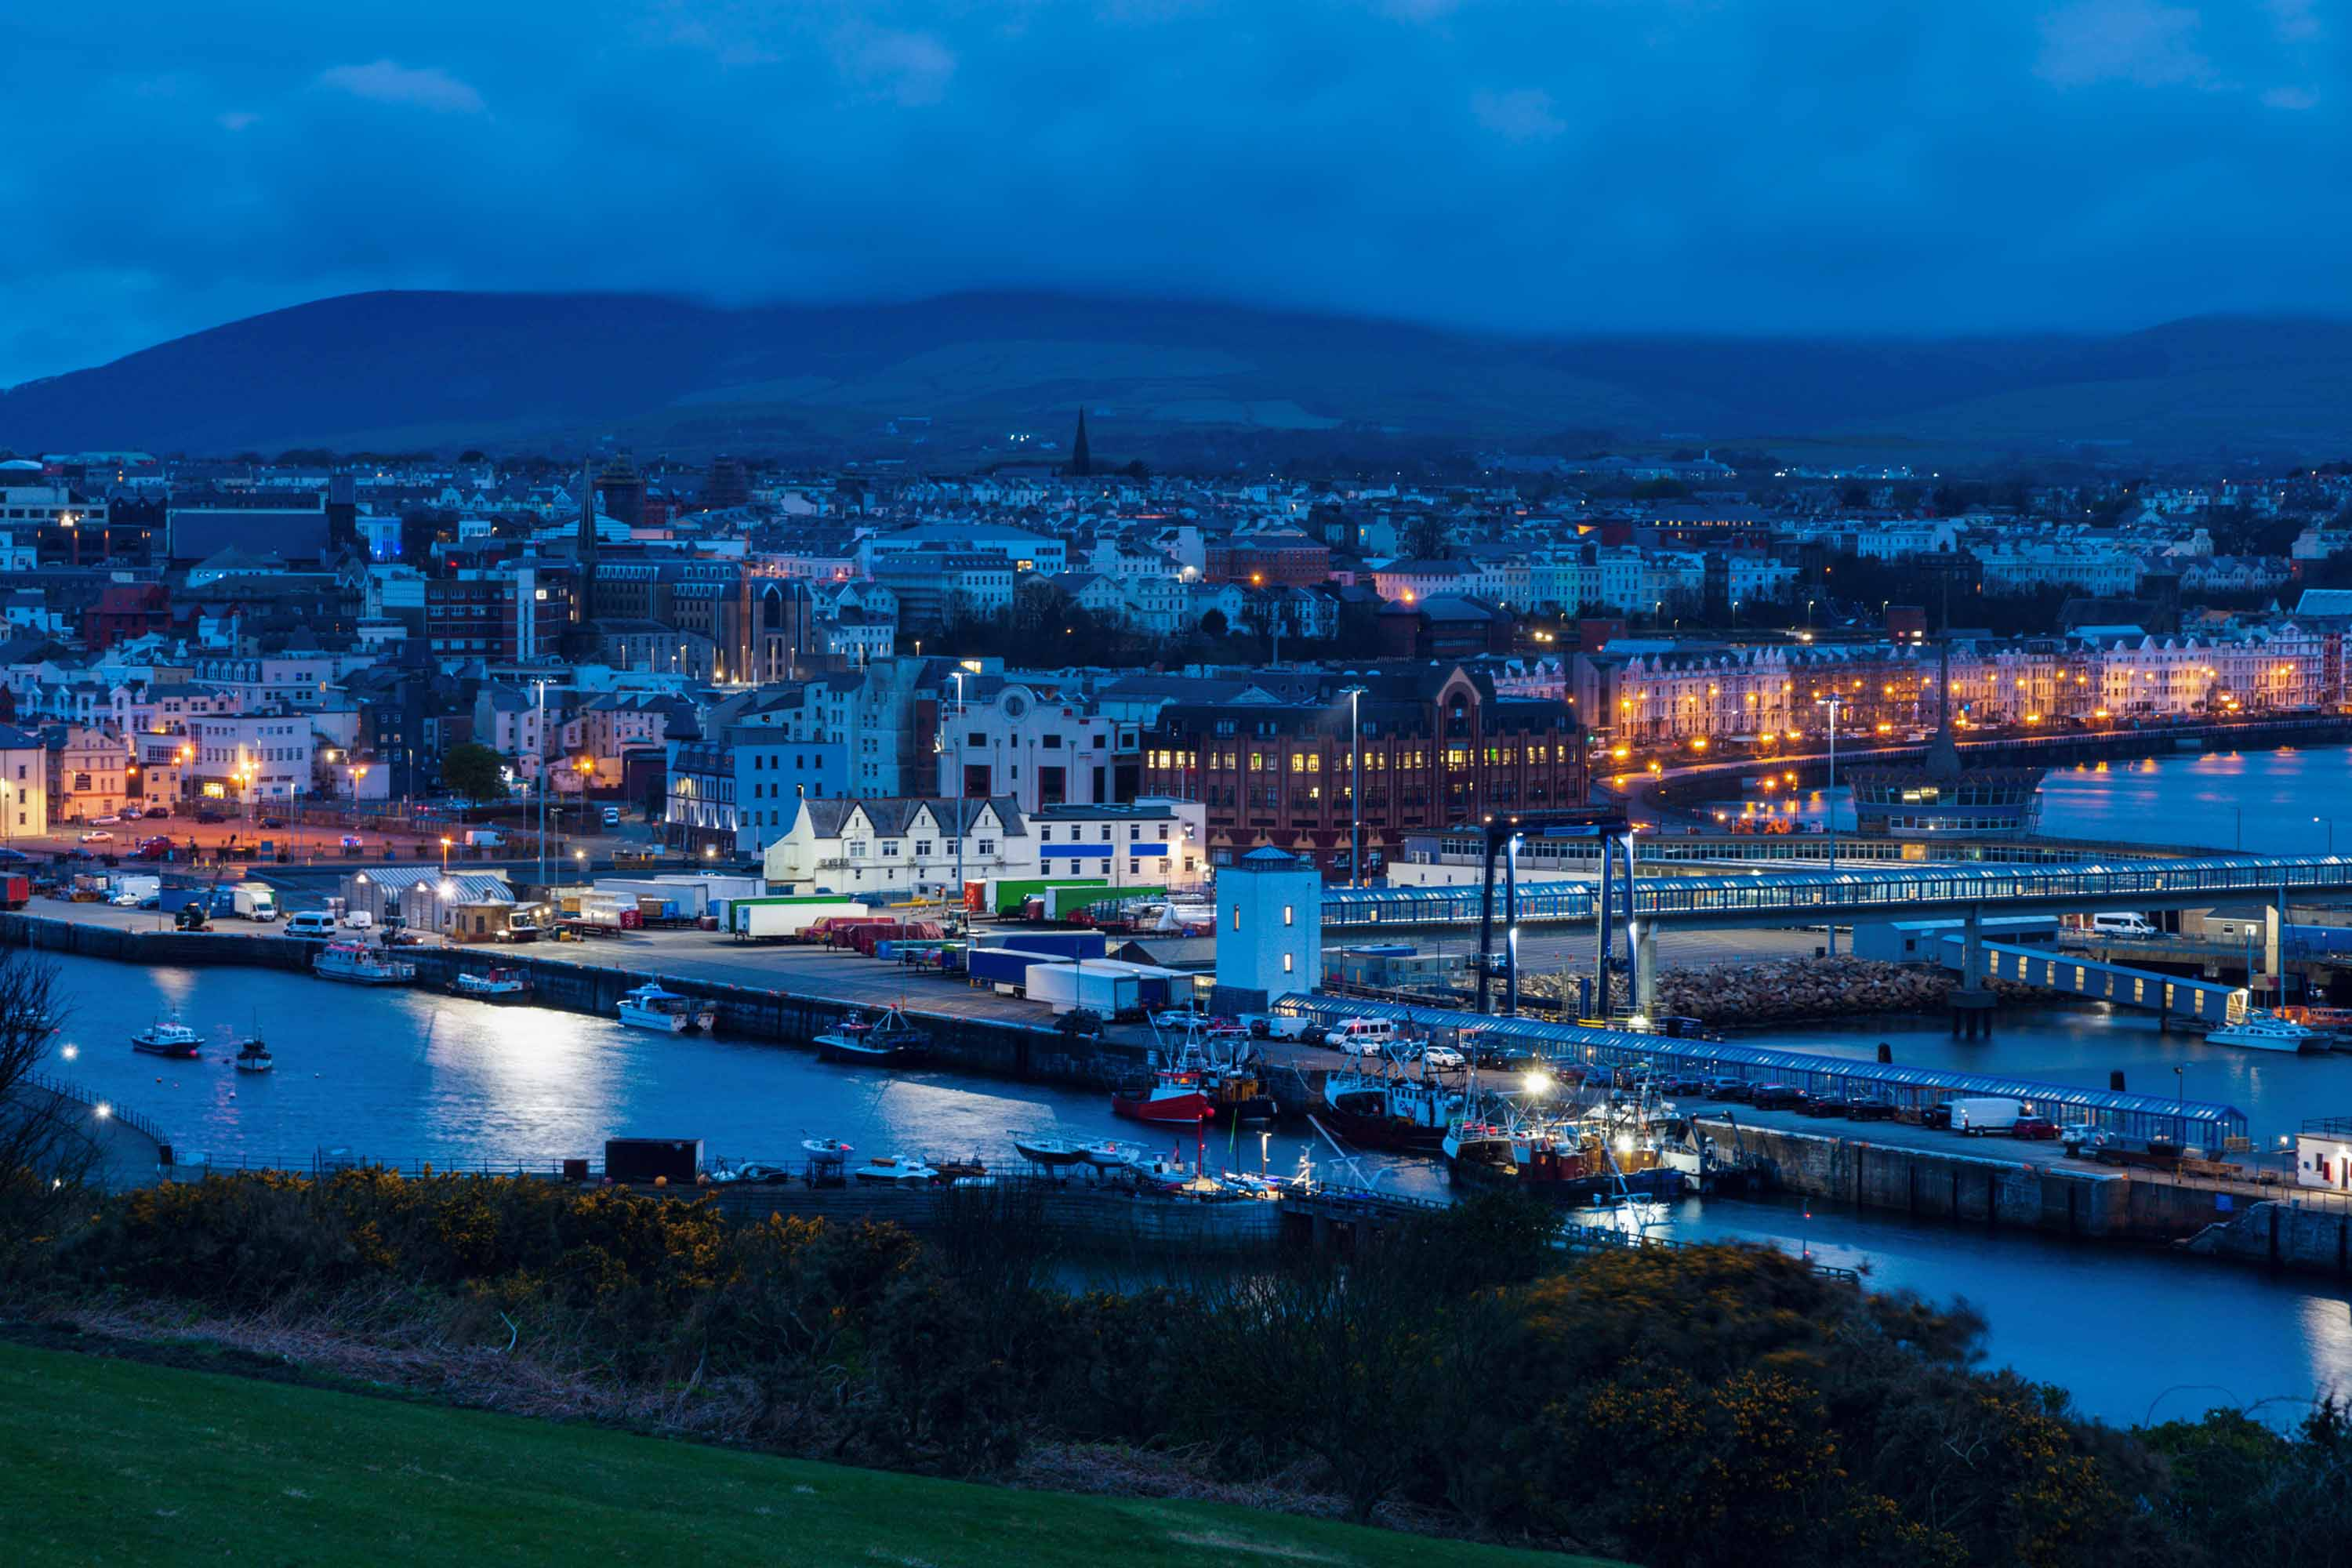 A view of Douglas, the capital of the Isle of Man.